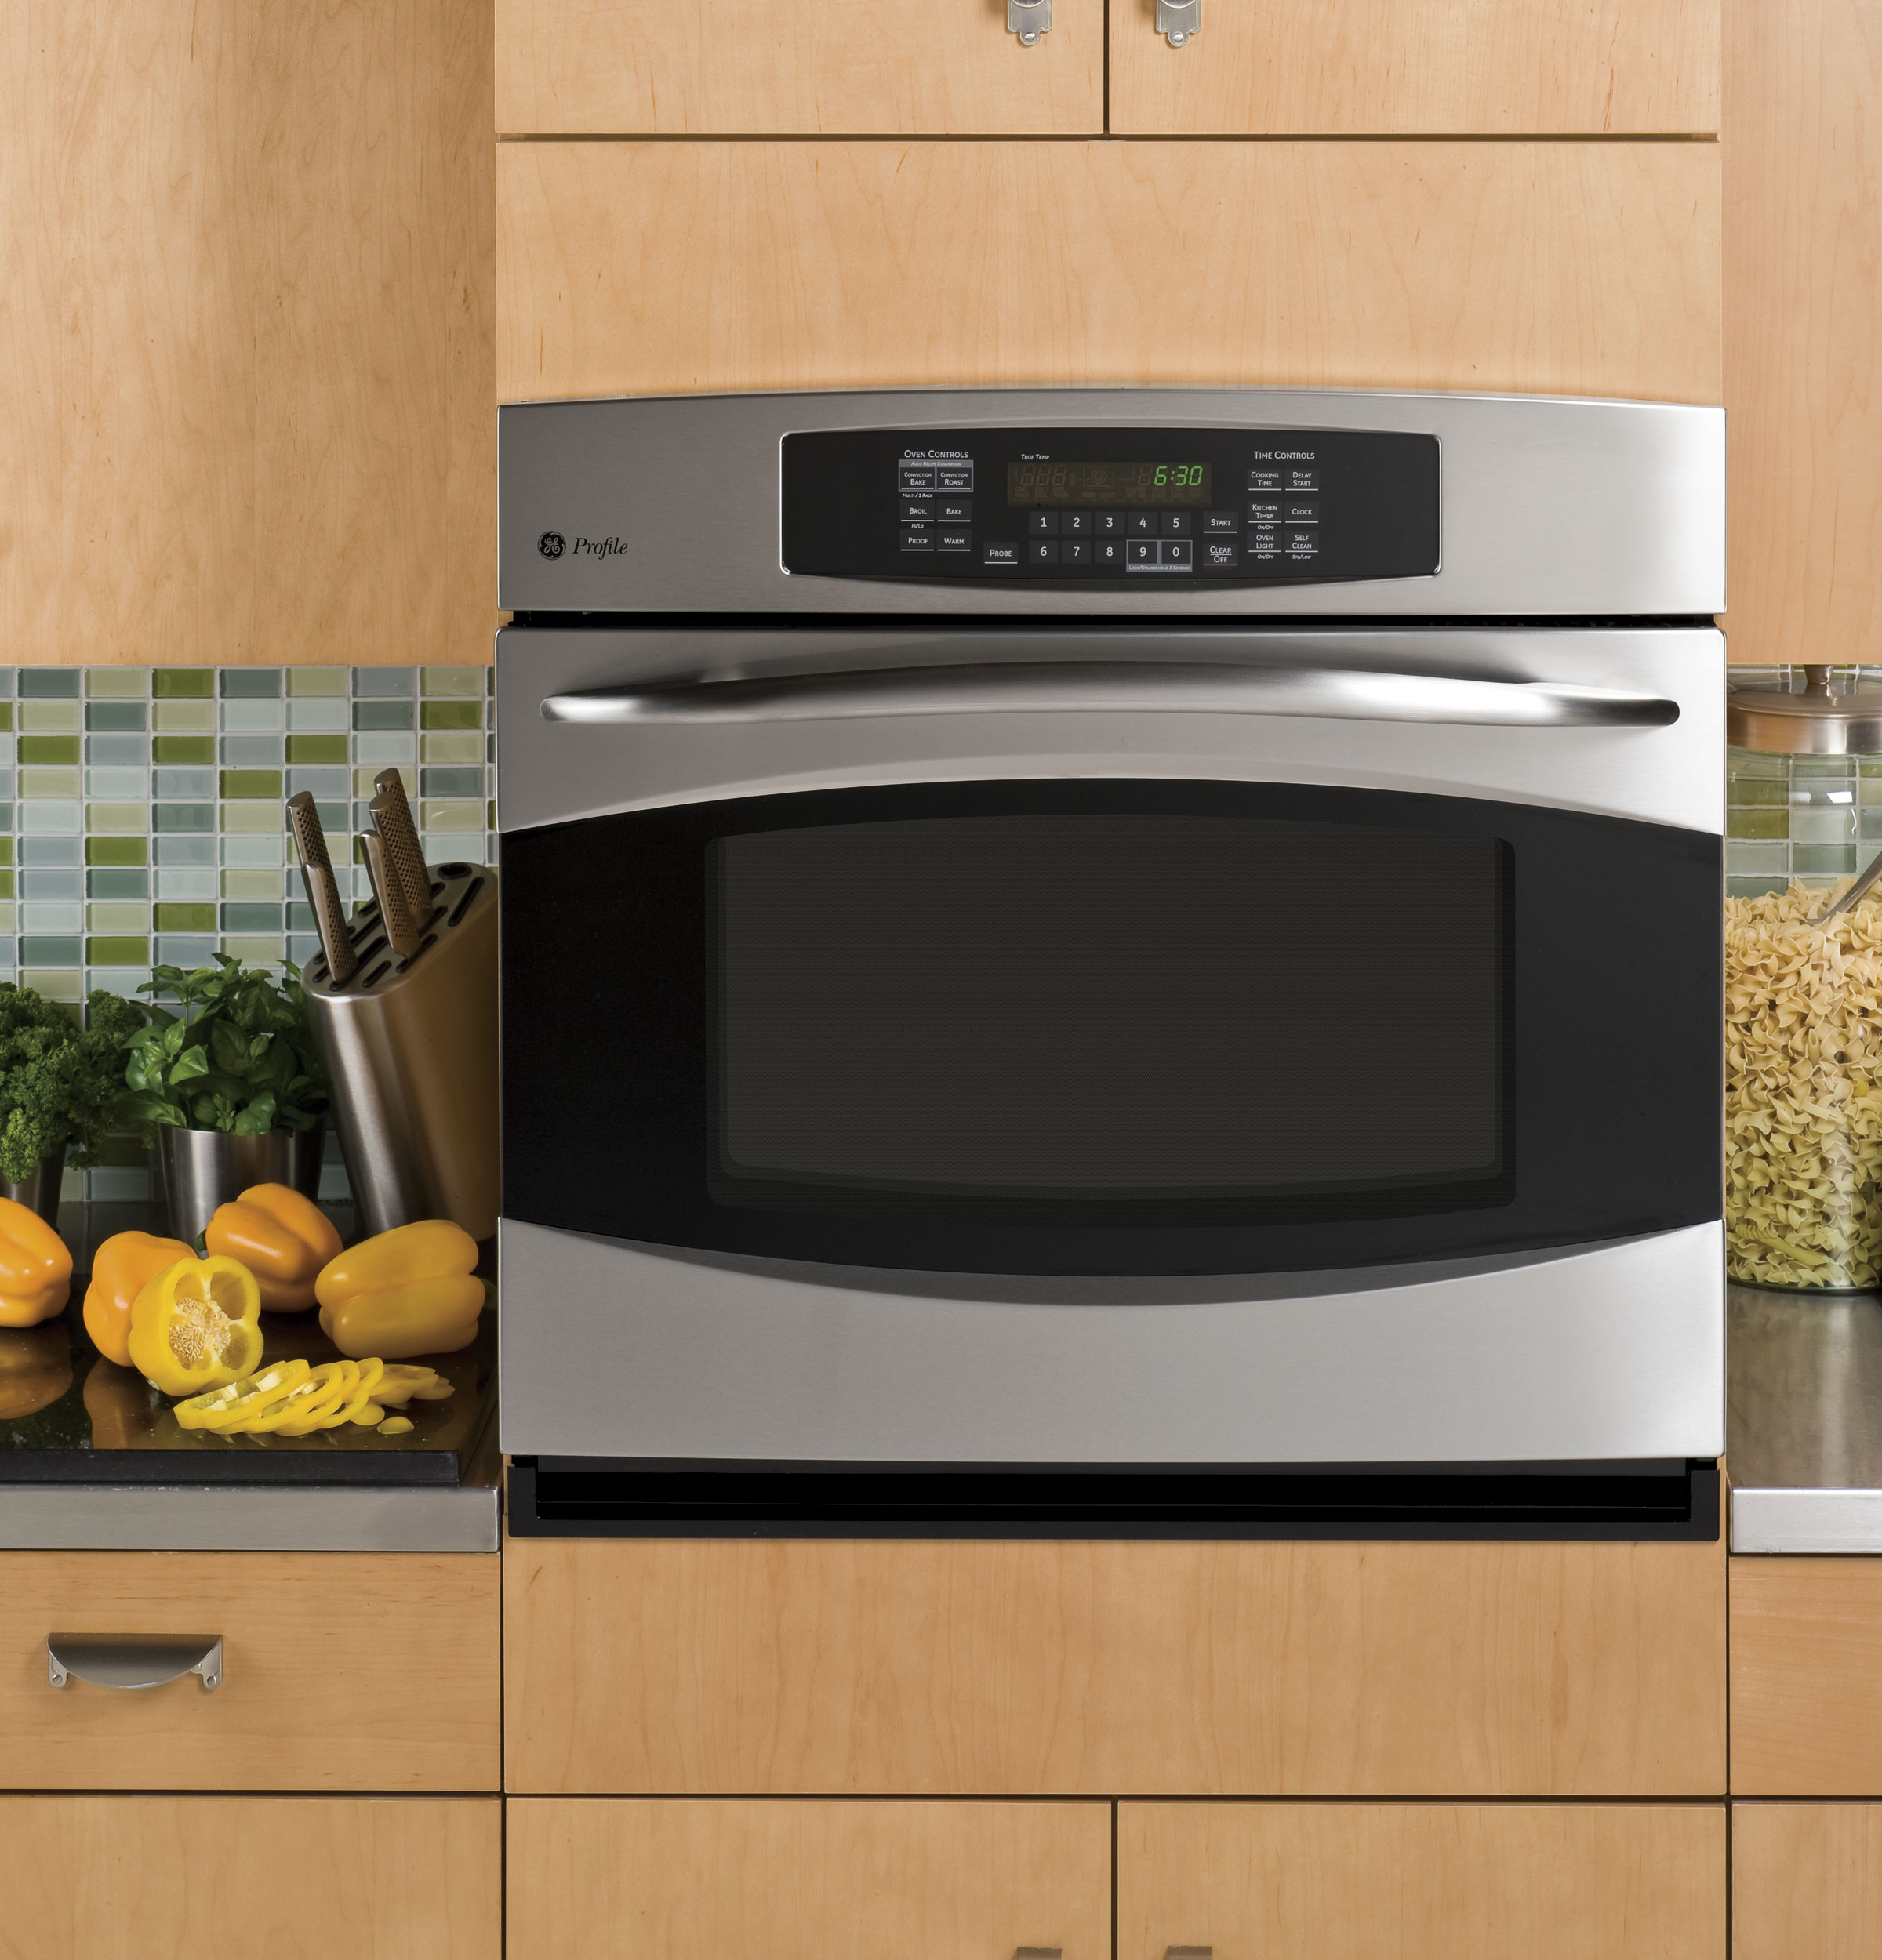 countertop xl large countertops products oven ovens steel stainless hero convection ss slice chefman toasters